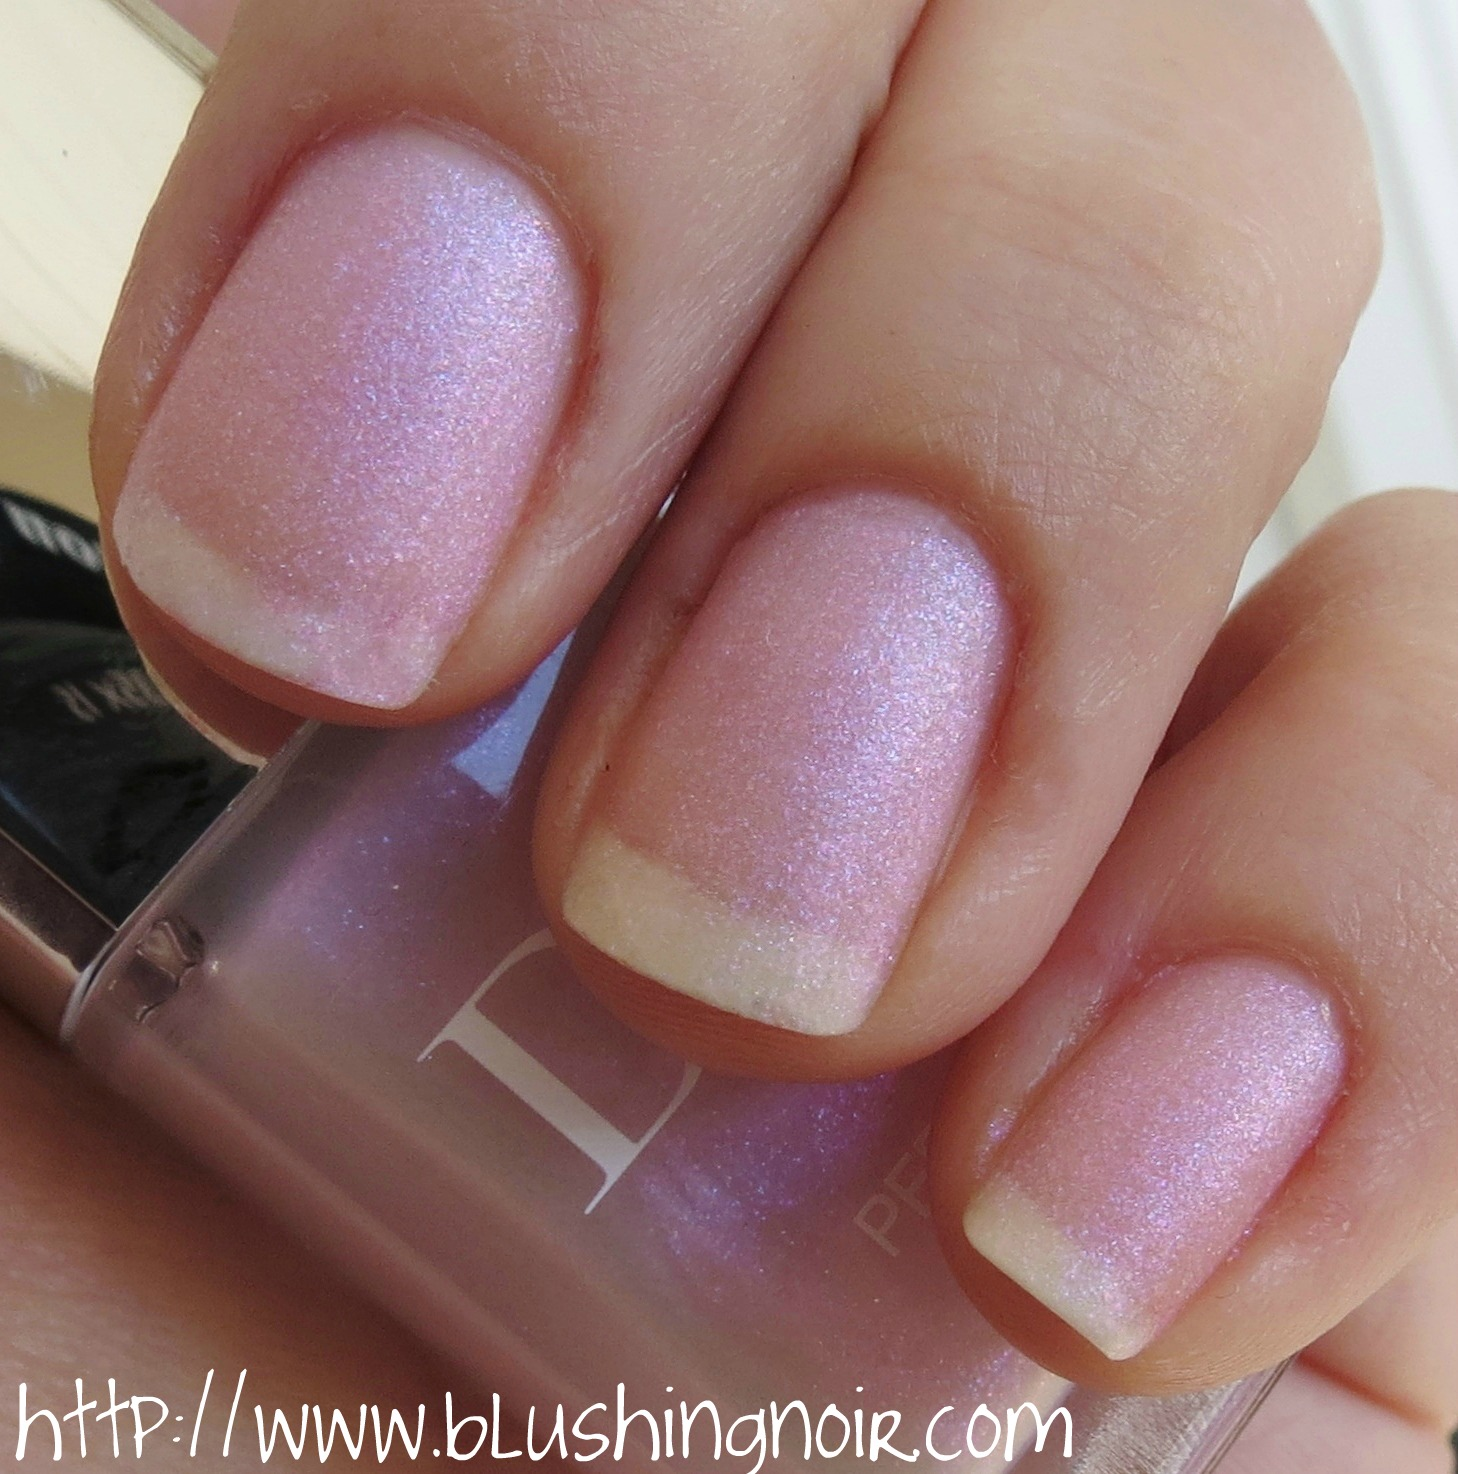 Dior 187 PERLE Le Vernis Nail Polish Swatches & Review